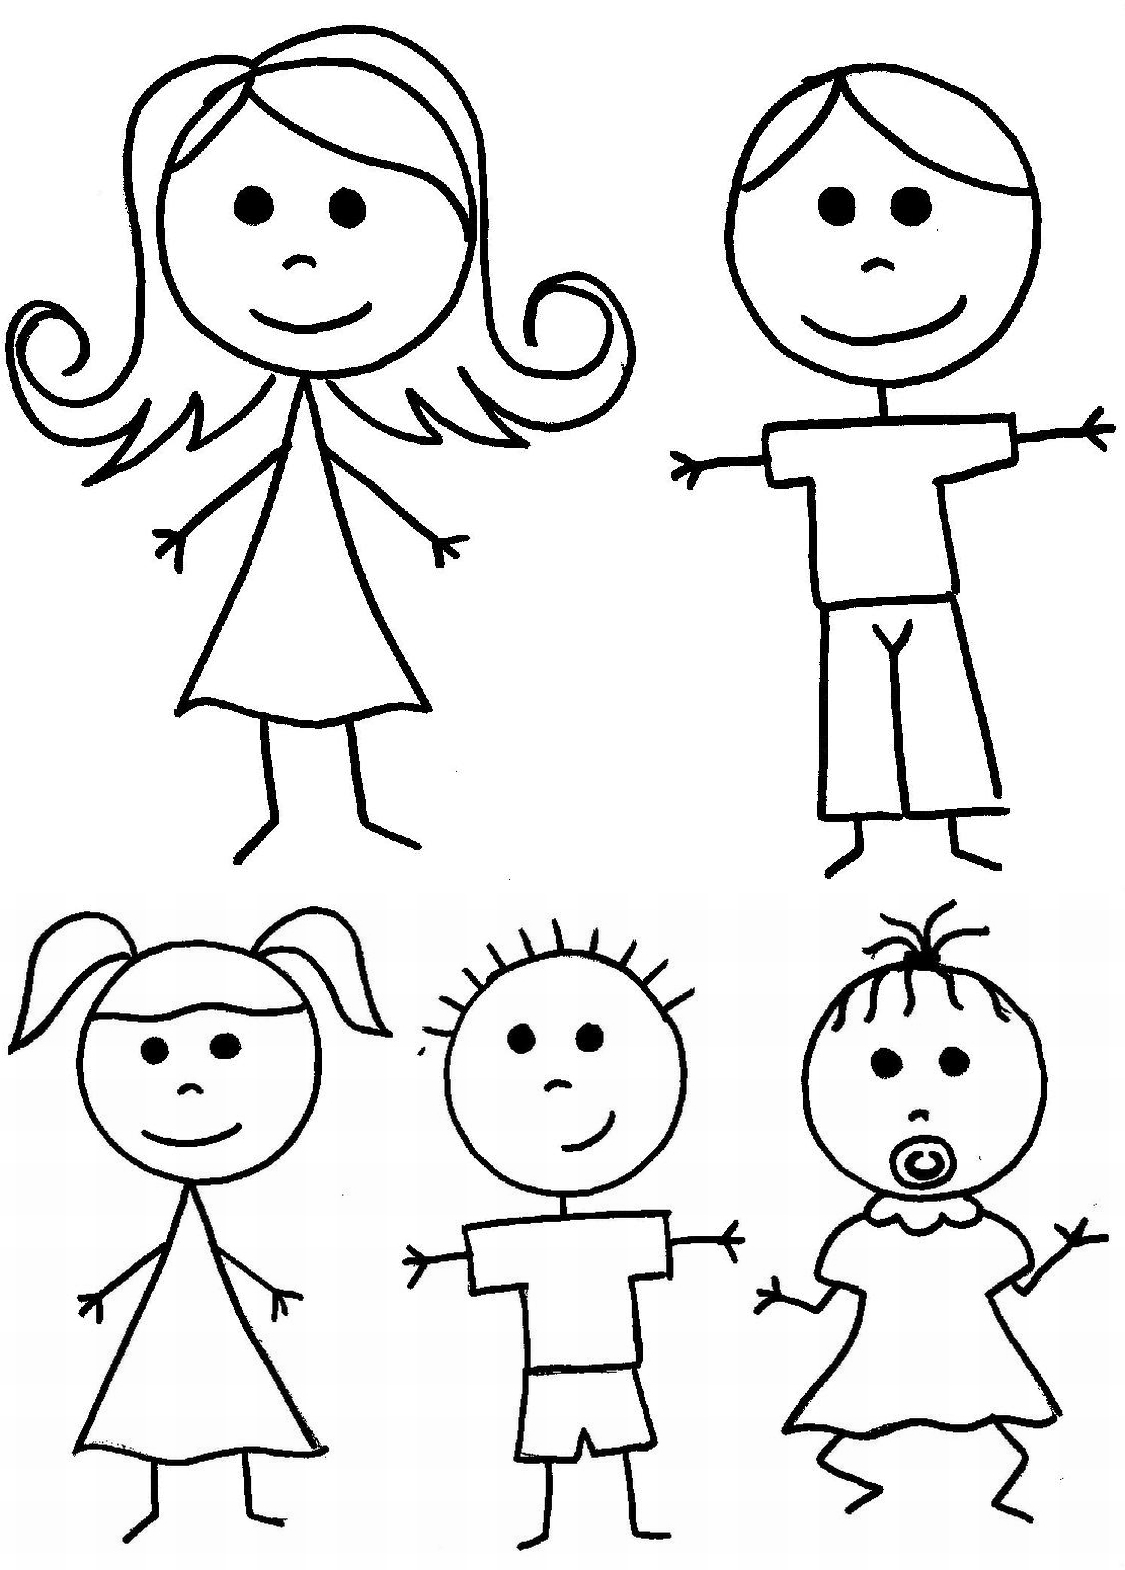 stick figures coloring pages - photo#2